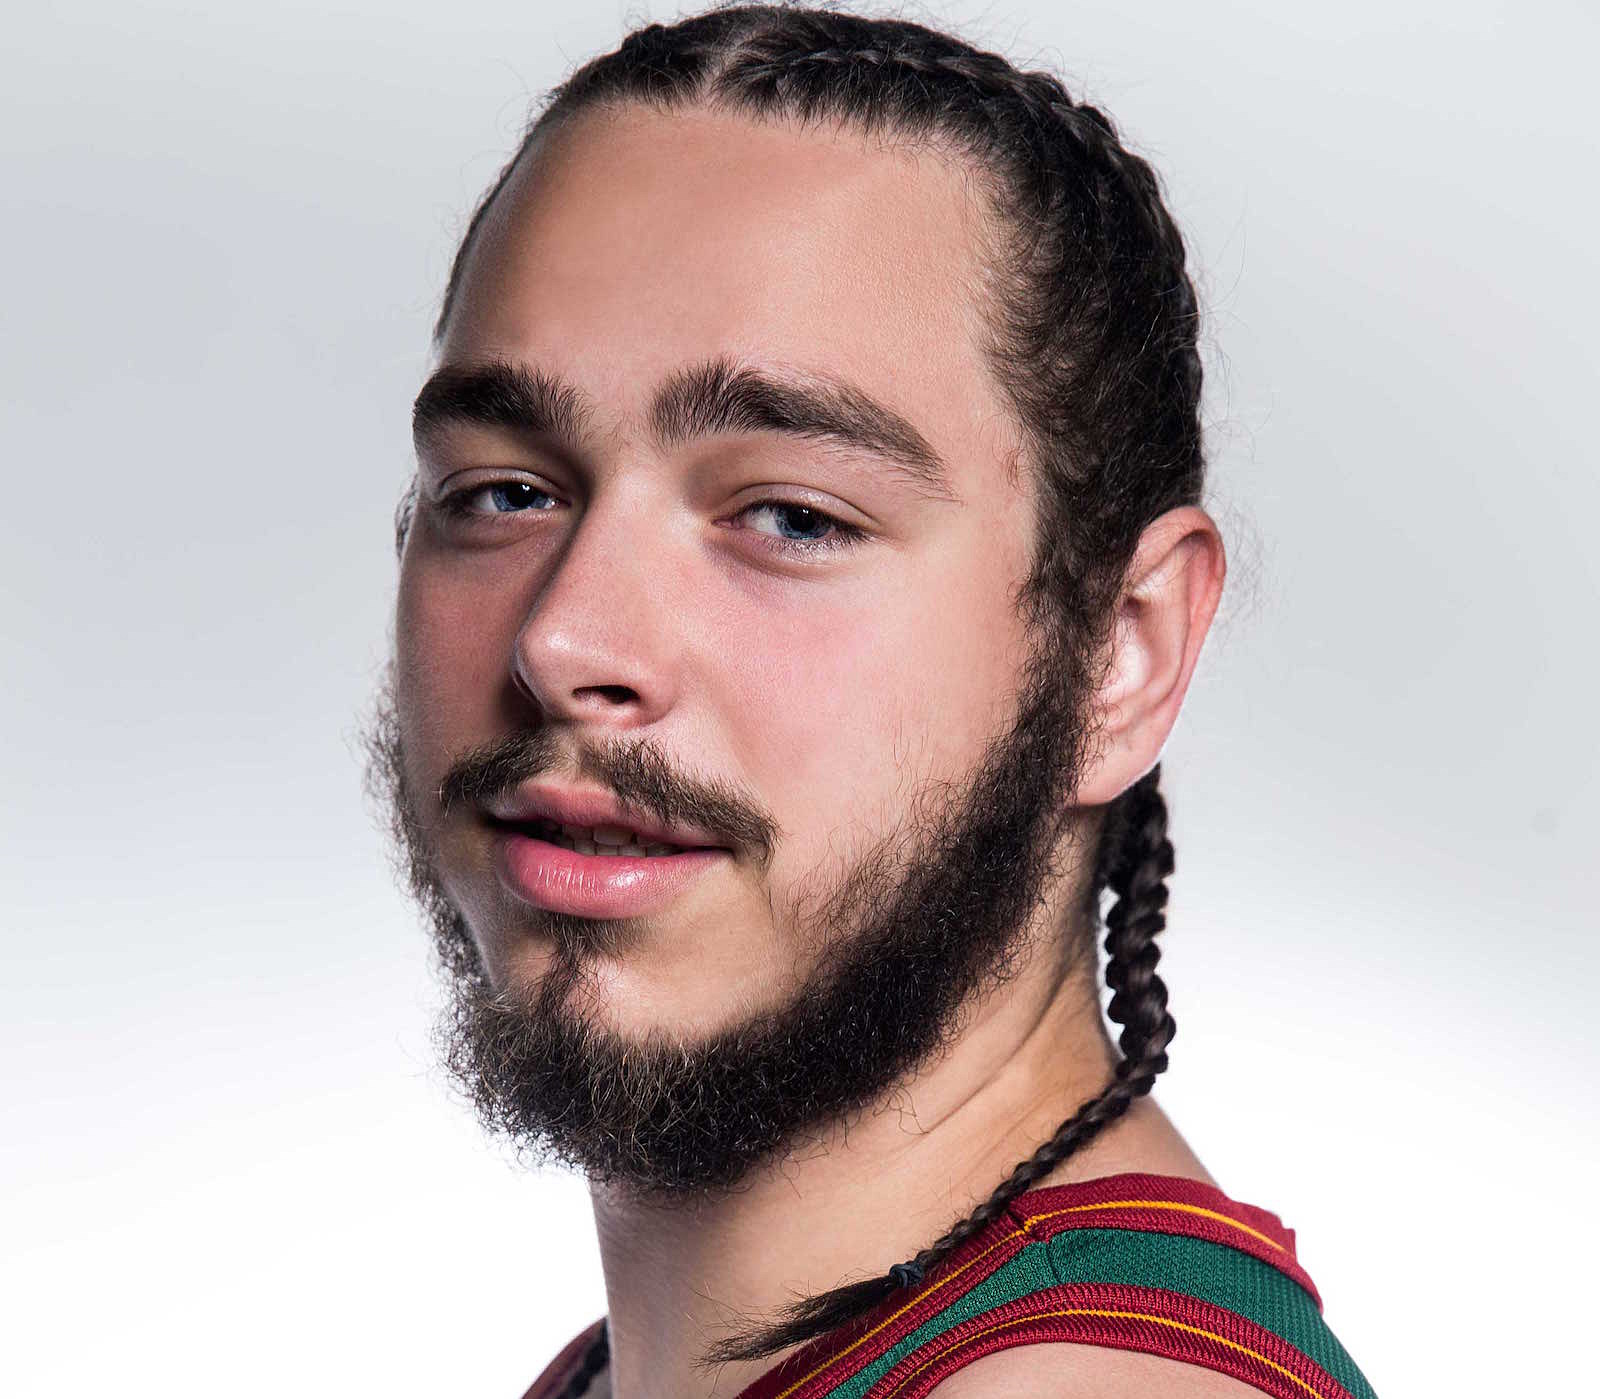 The 22-year old son of father (?) and mother(?), 183 cm tall Post Malone in 2018 photo